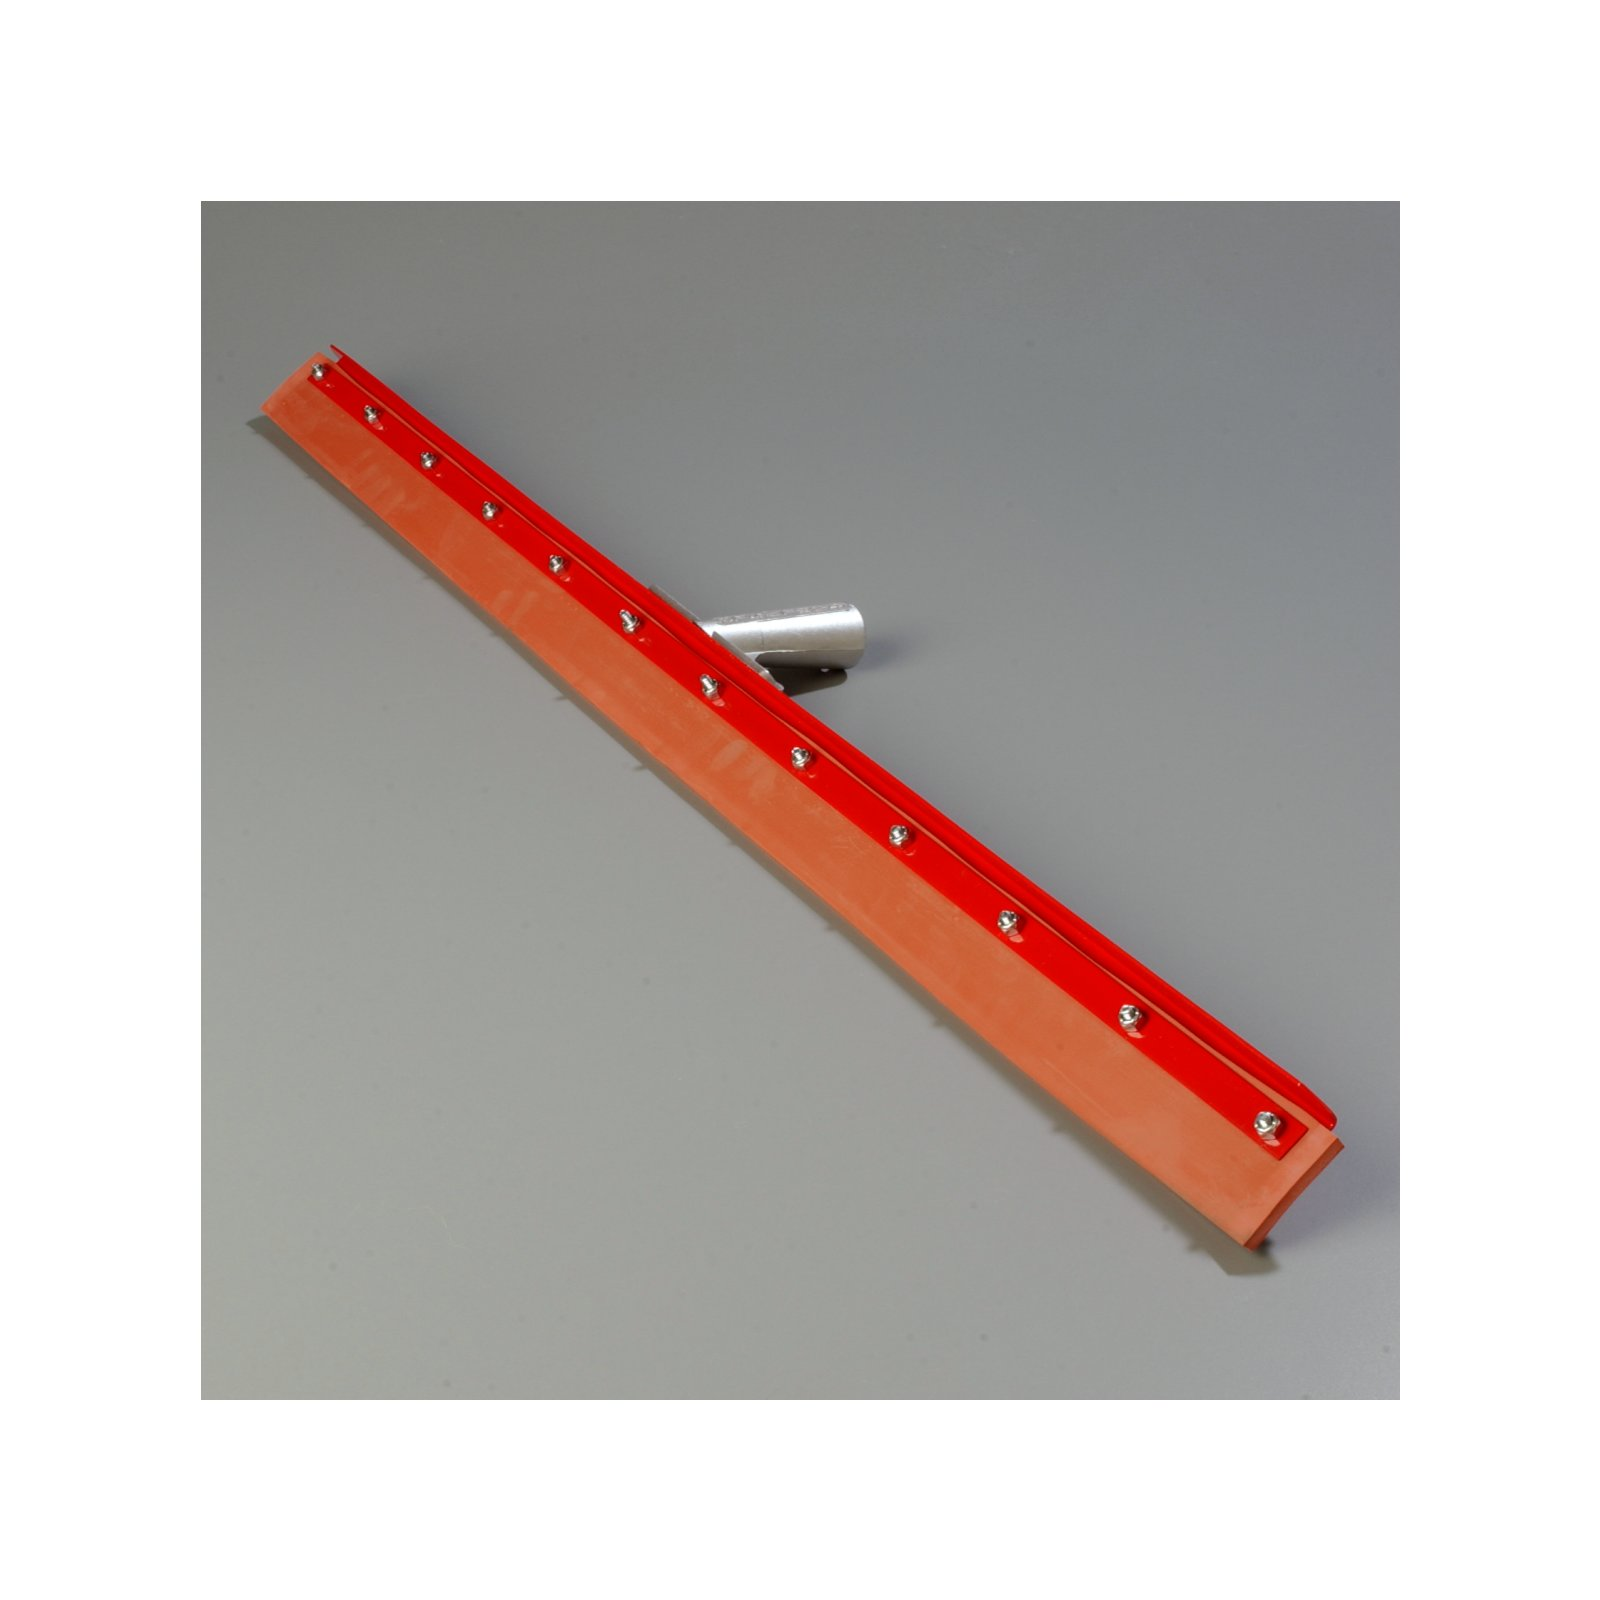 4007700 flo pacr straight red gum rubber floor squeegee for Floor squeegees heavy duty